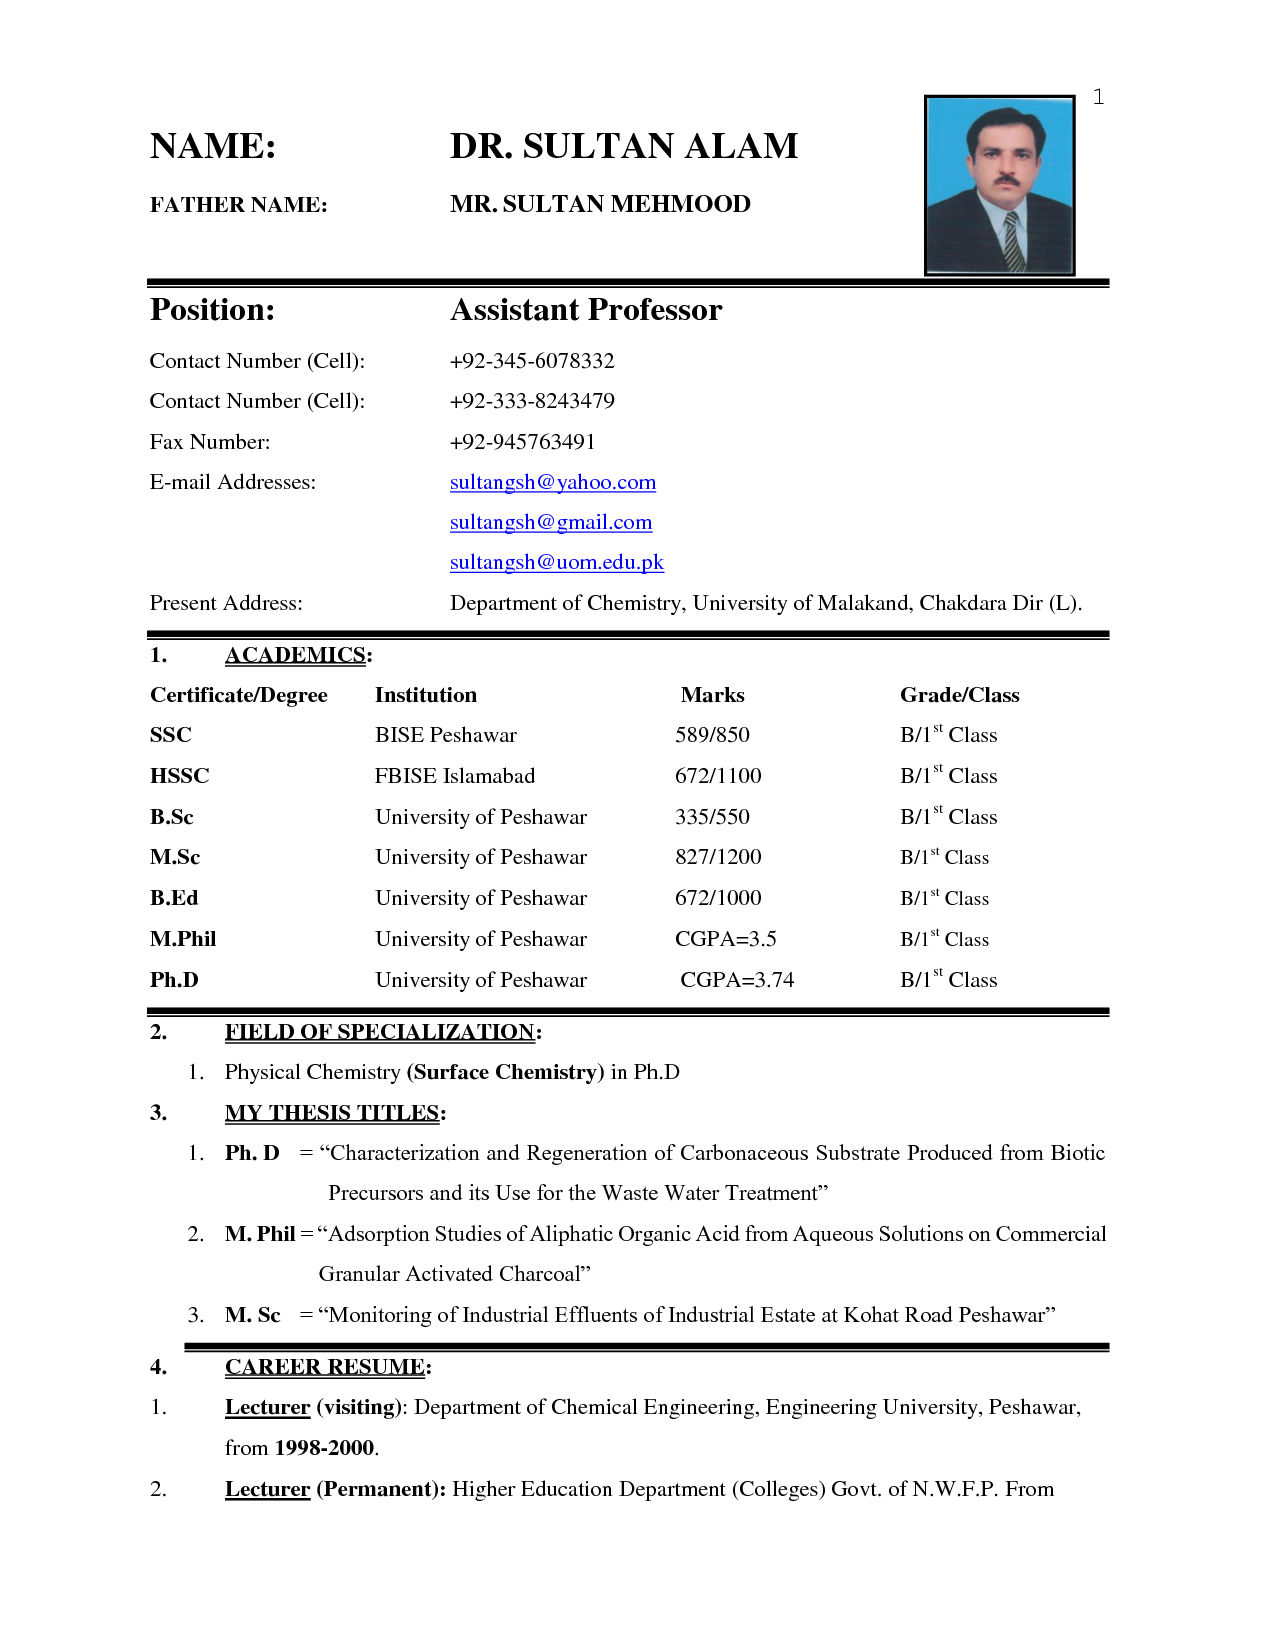 Resume Templates For Microsoft Word Biodata Form In Word Simple Biodata Format Doc Letterformats